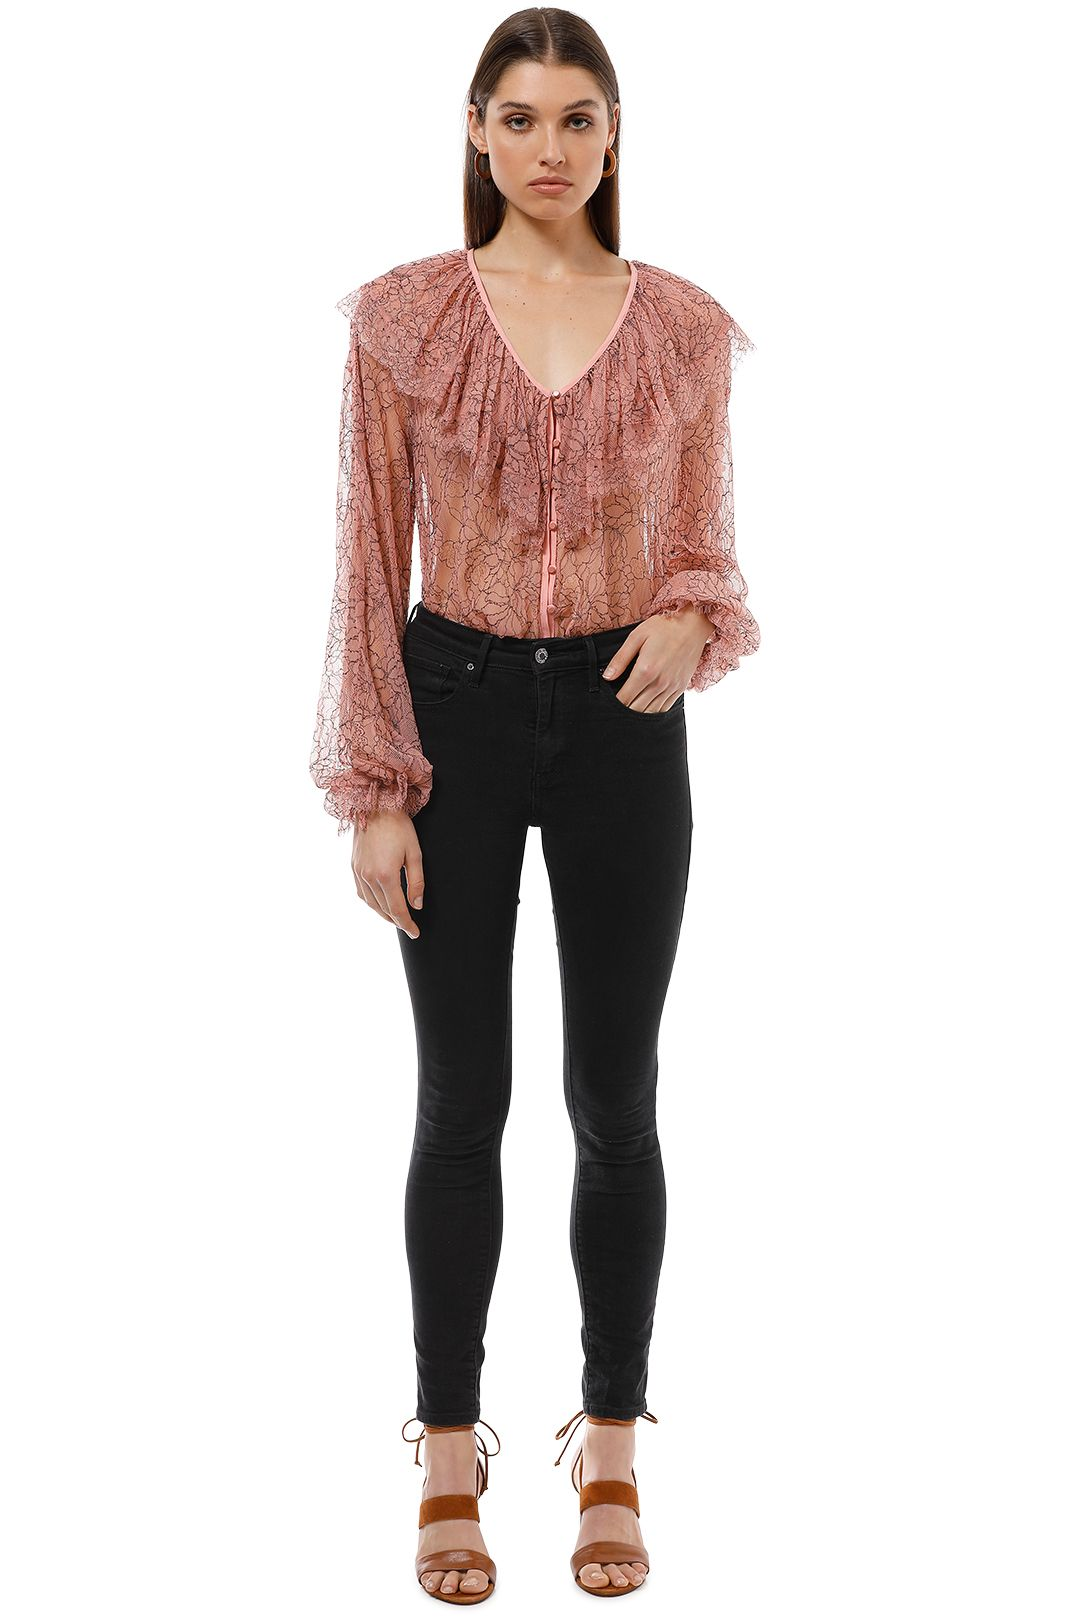 Alice McCall - Folklore Blouse - Blush Pink - Front